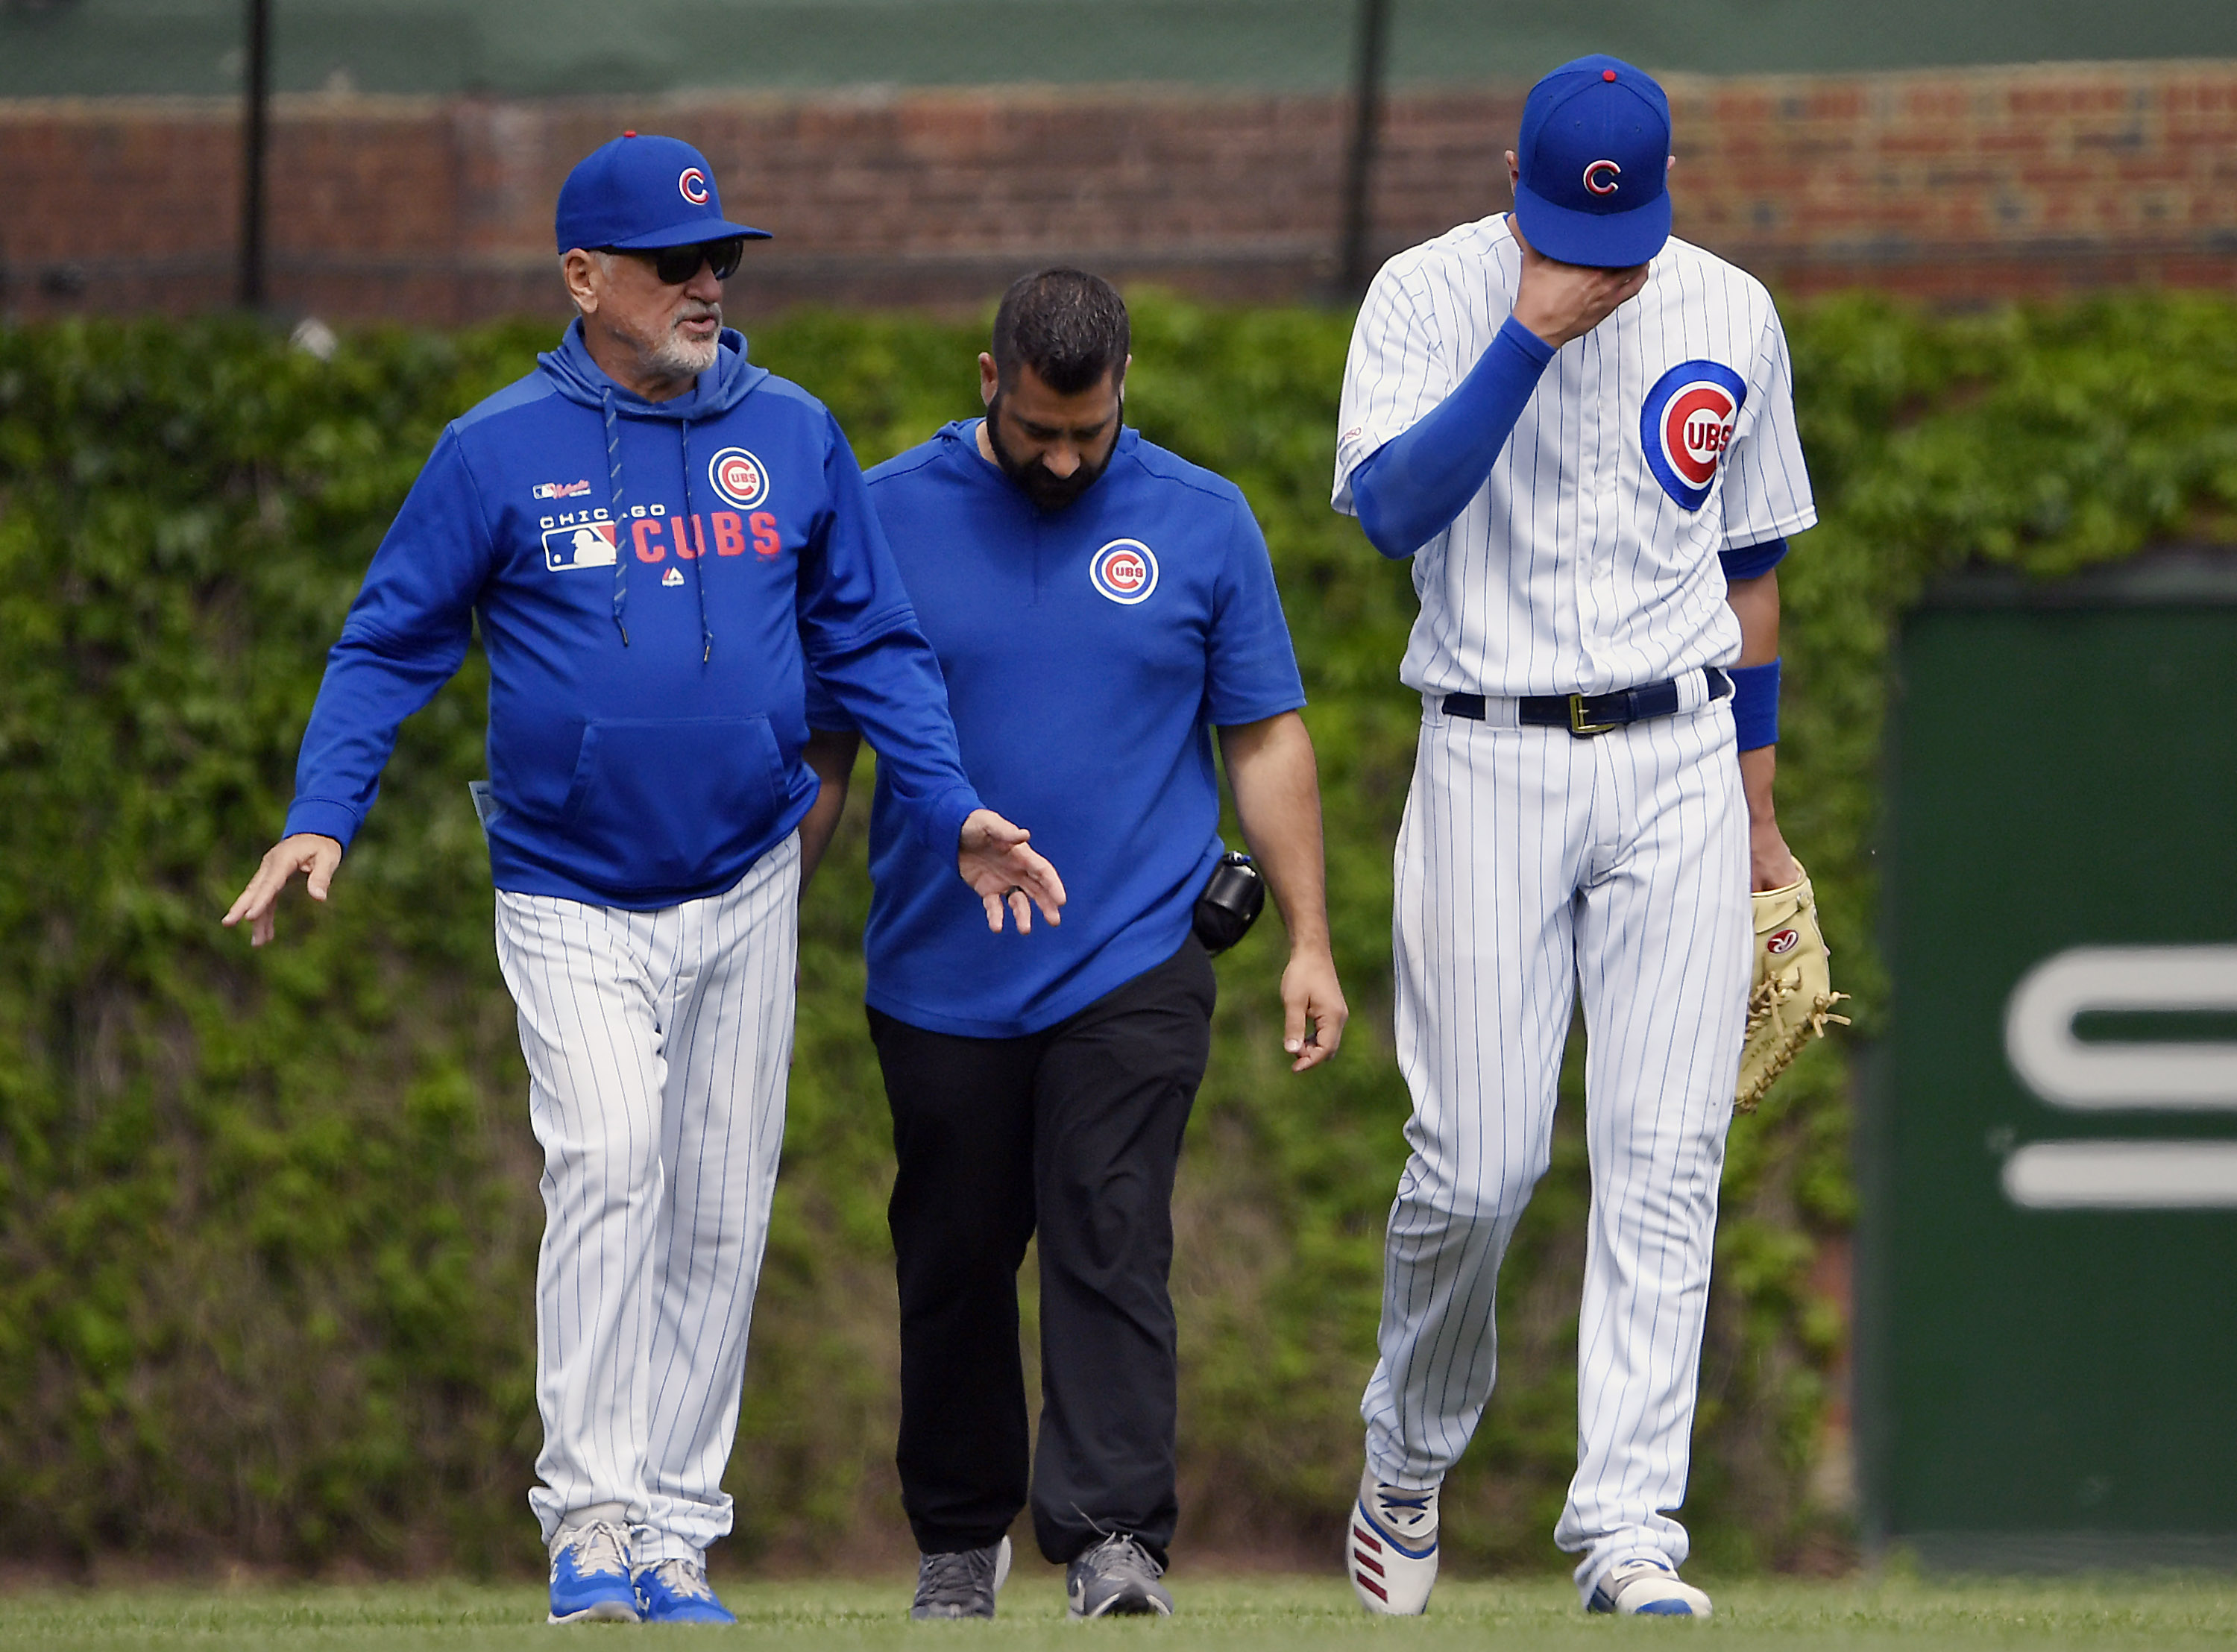 finest selection d8fa9 30475 Cubs' Kris Bryant remains sidelined, under evaluation after ...